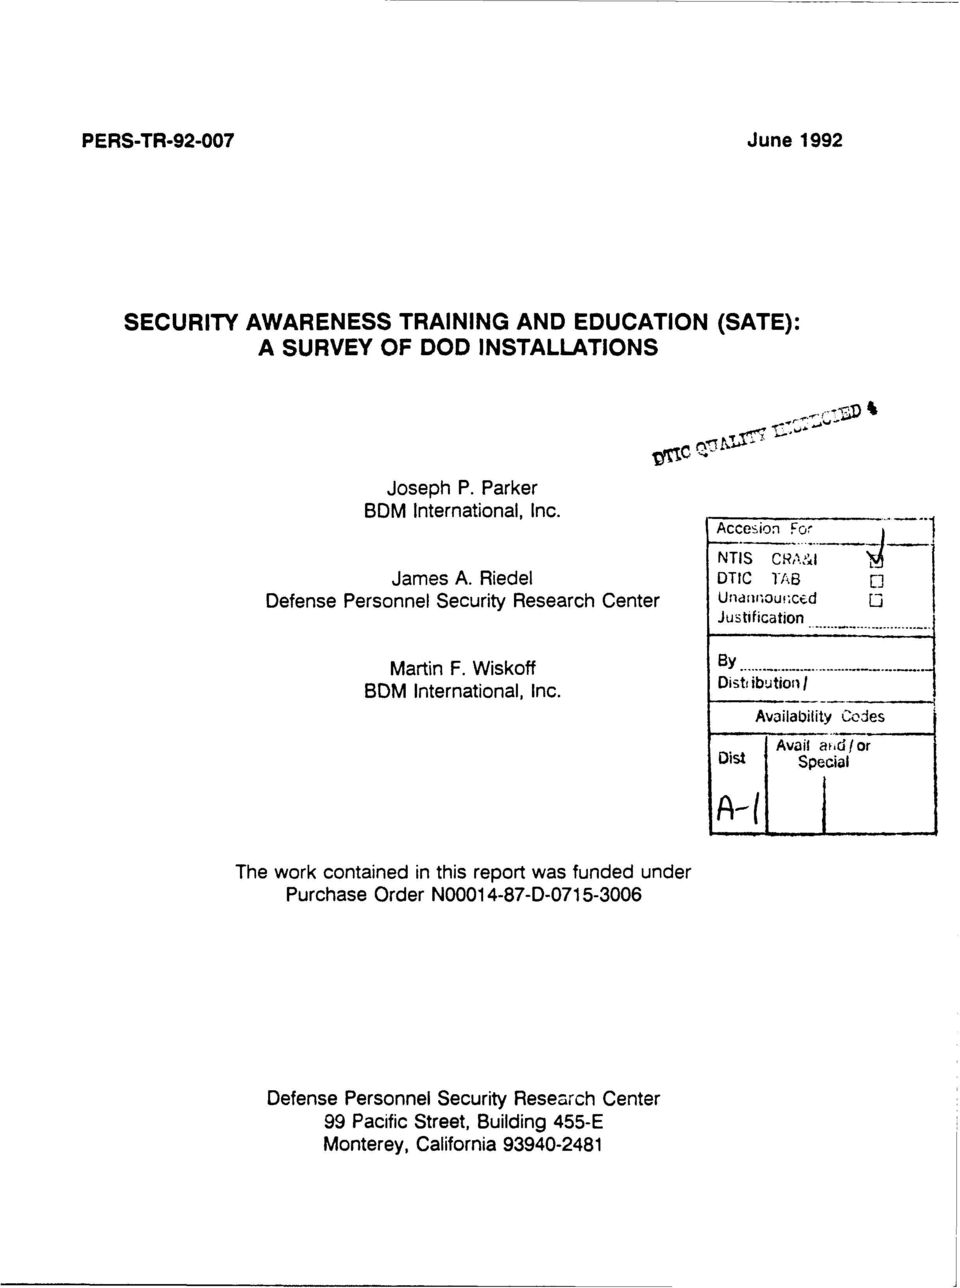 Riedel DTIC IAB Defense Personnel Security Research Center Unanlou'-ced Justification Martin F. W iskoff By....1... BDM International, Inc.